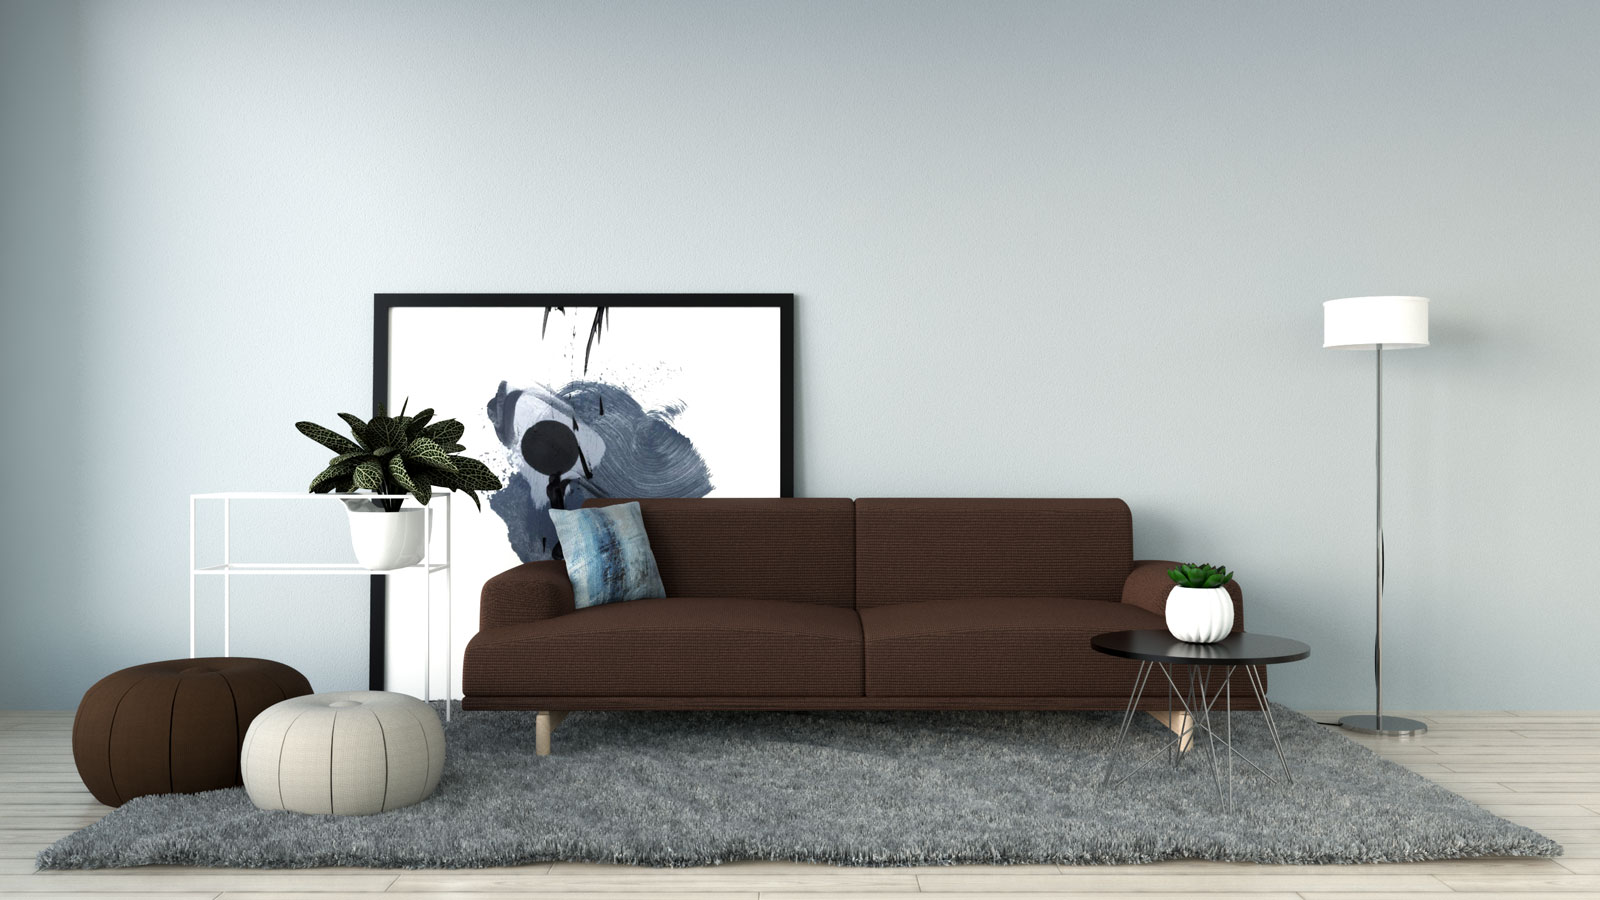 Silver mist wall with brown sofa